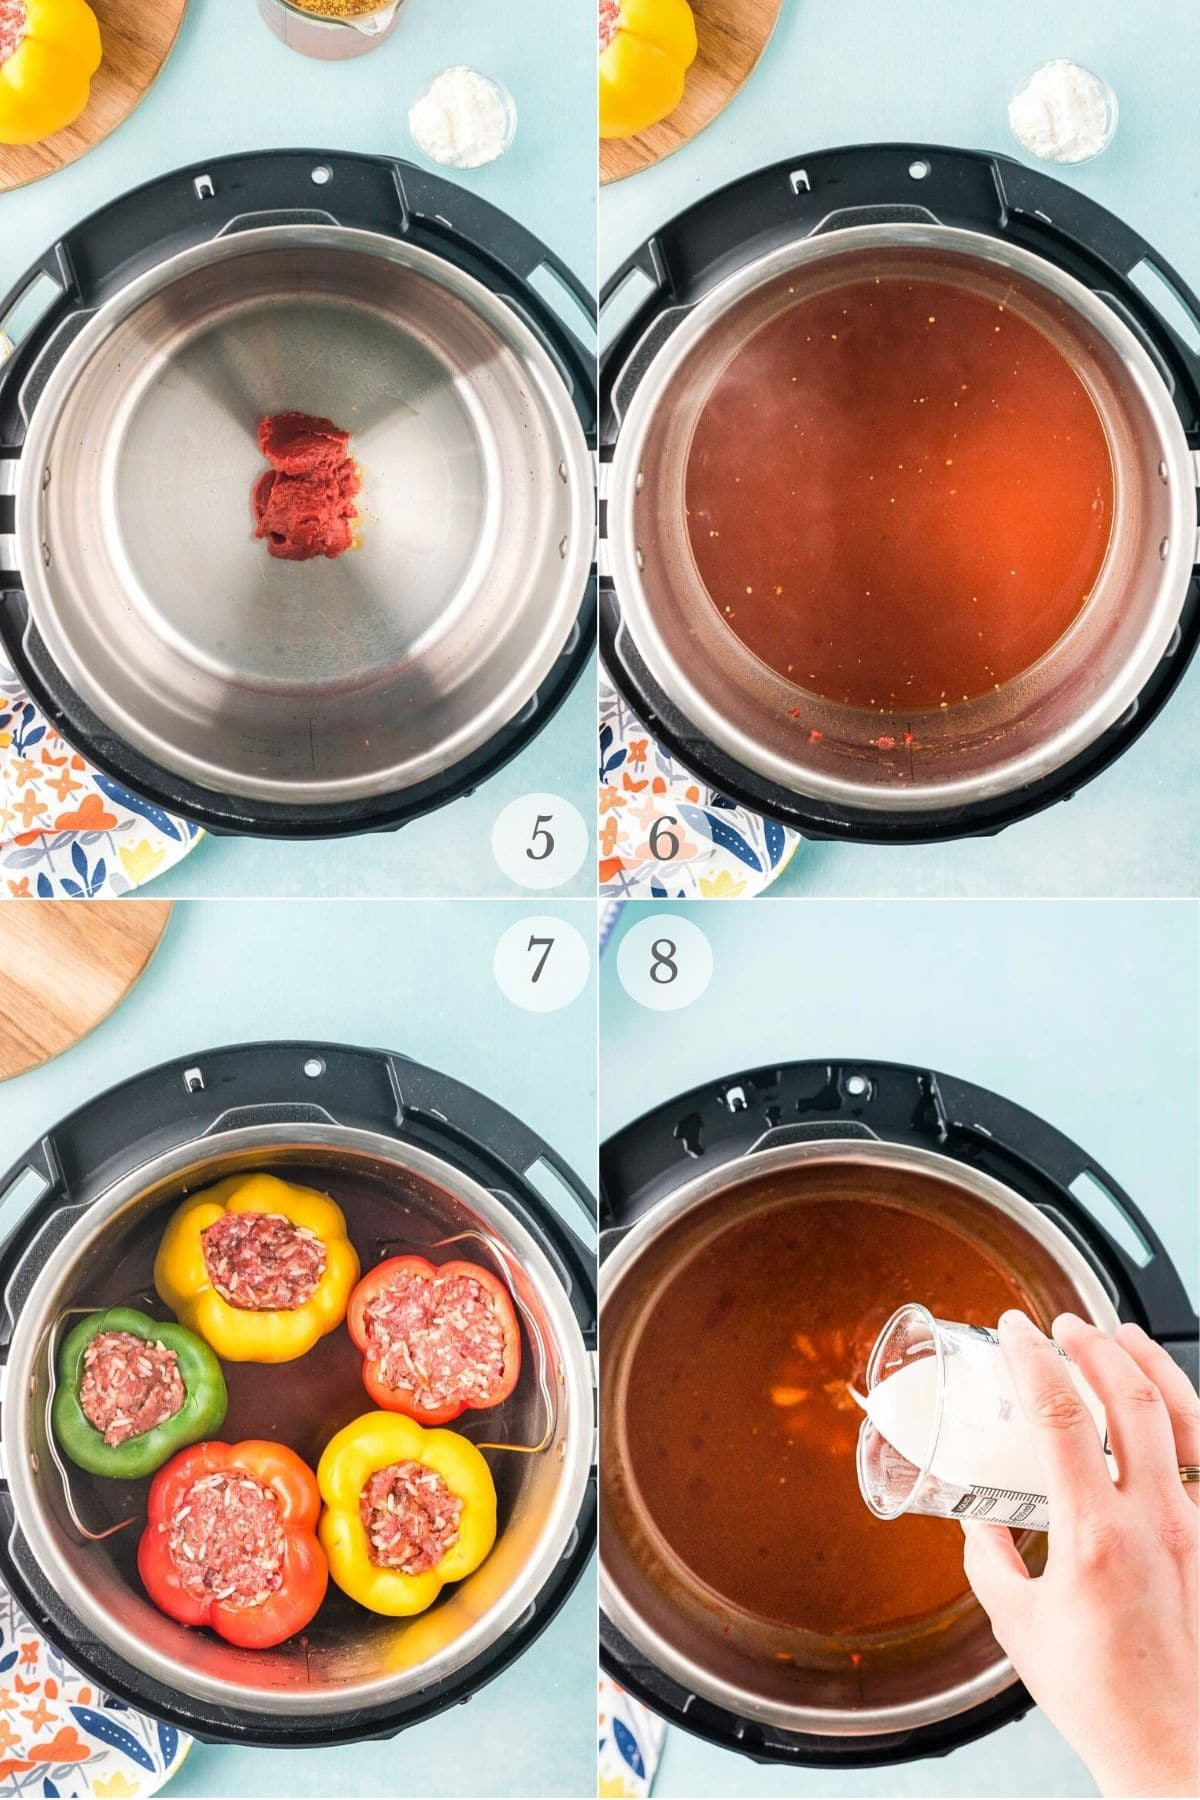 instant pot stuffed peppers recipe steps 5-8